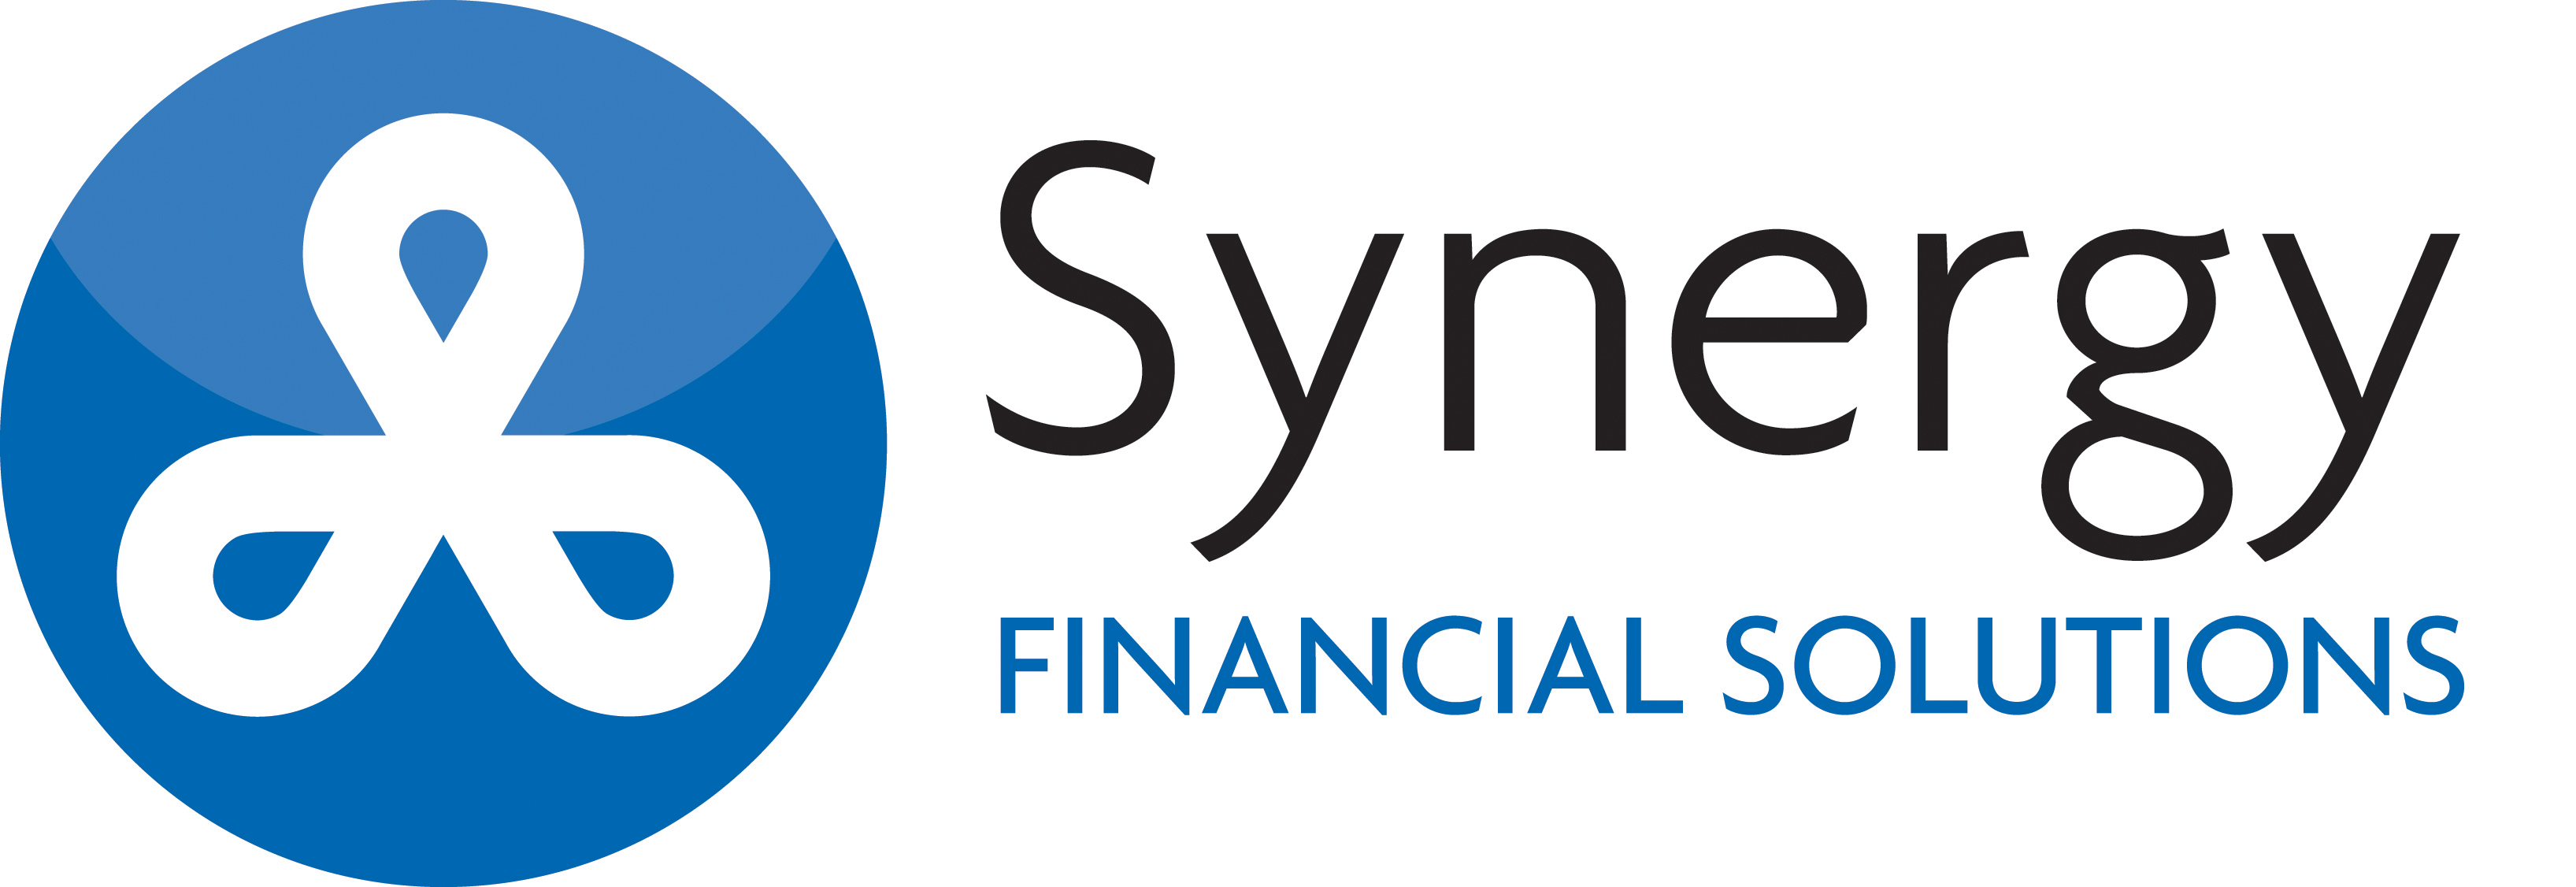 Synergy Financial Solutions